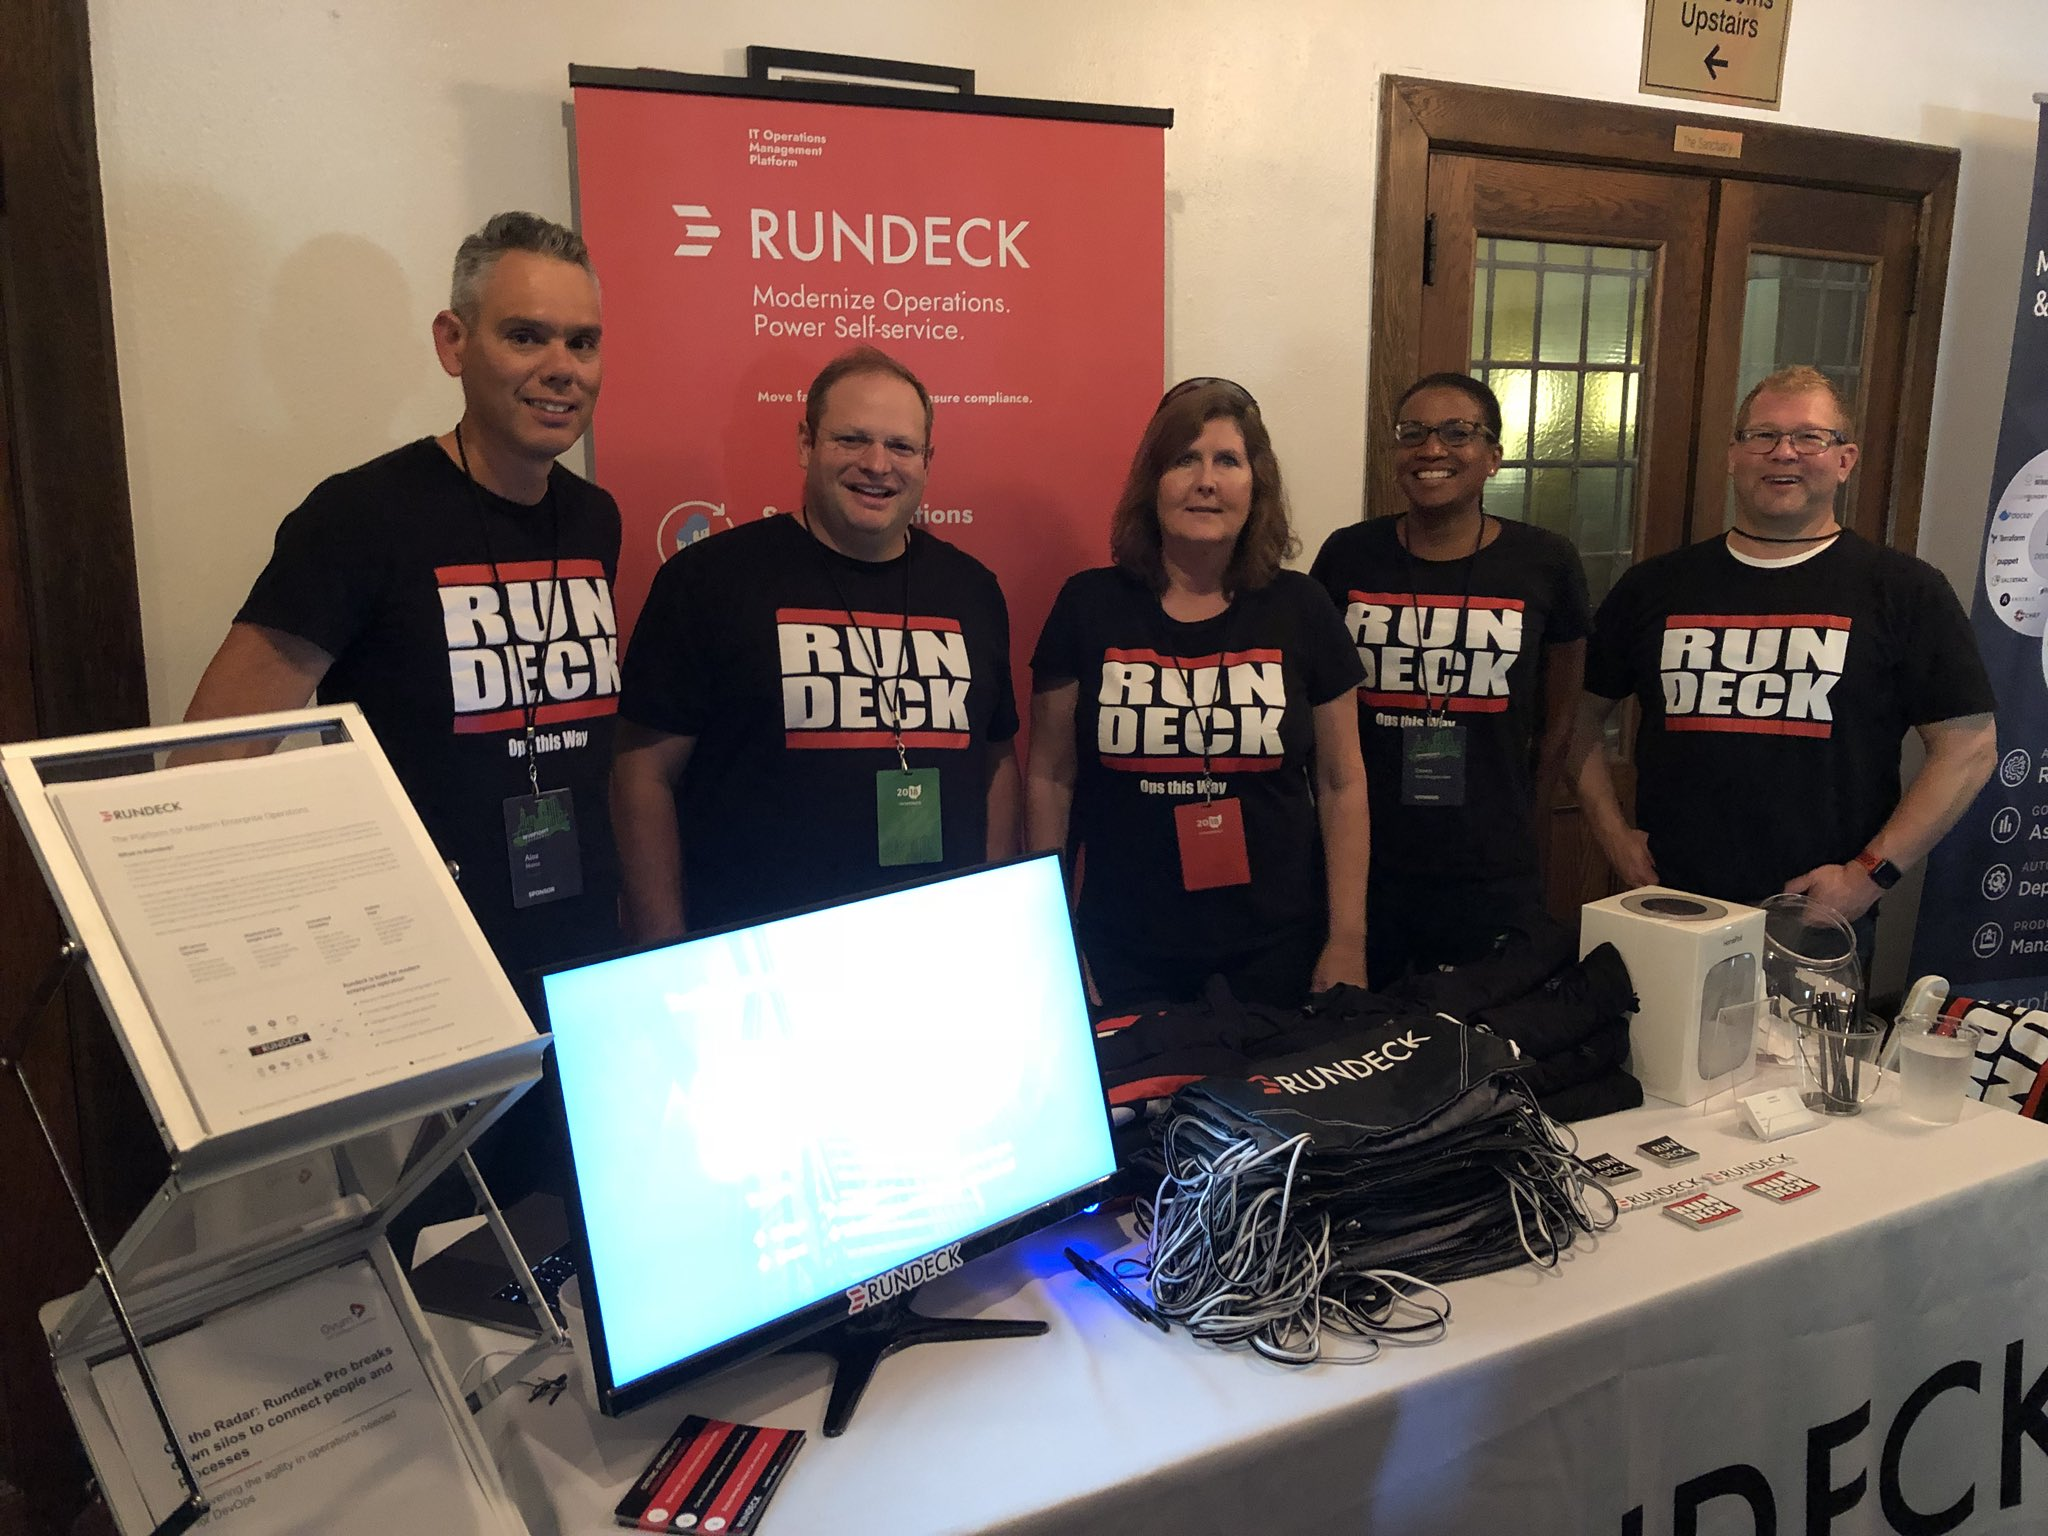 Rundeck Team